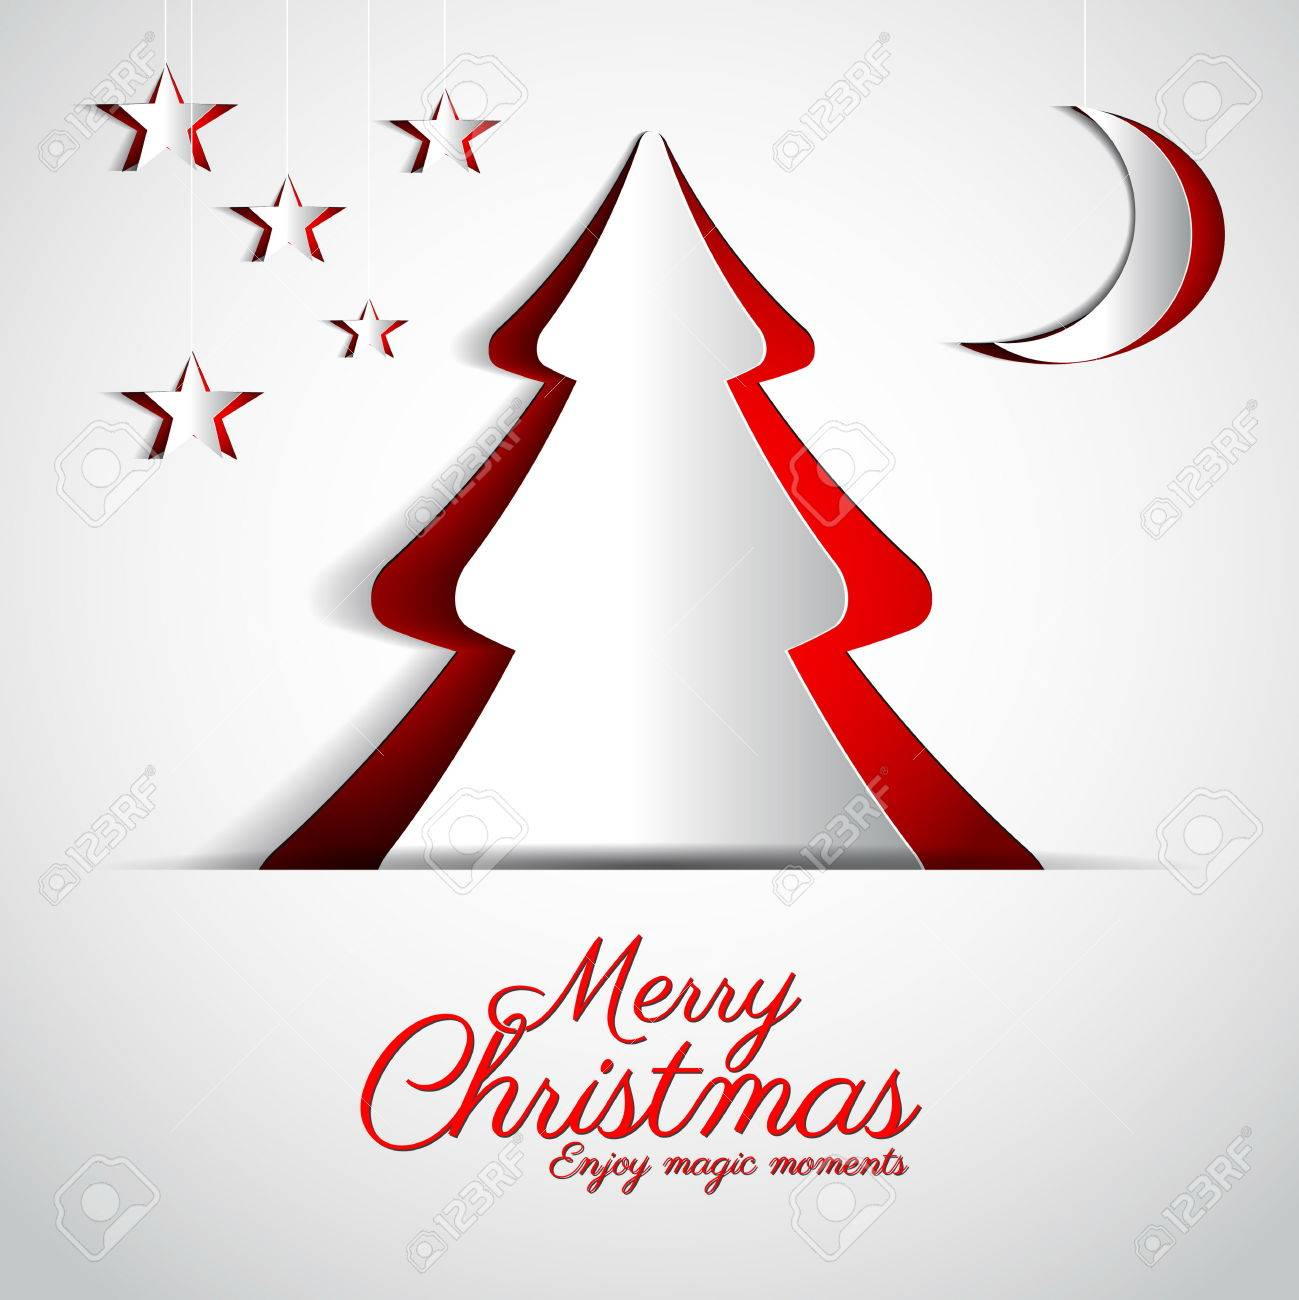 Merry Christmas paper tree design greeting card - vector illustration - 23510083